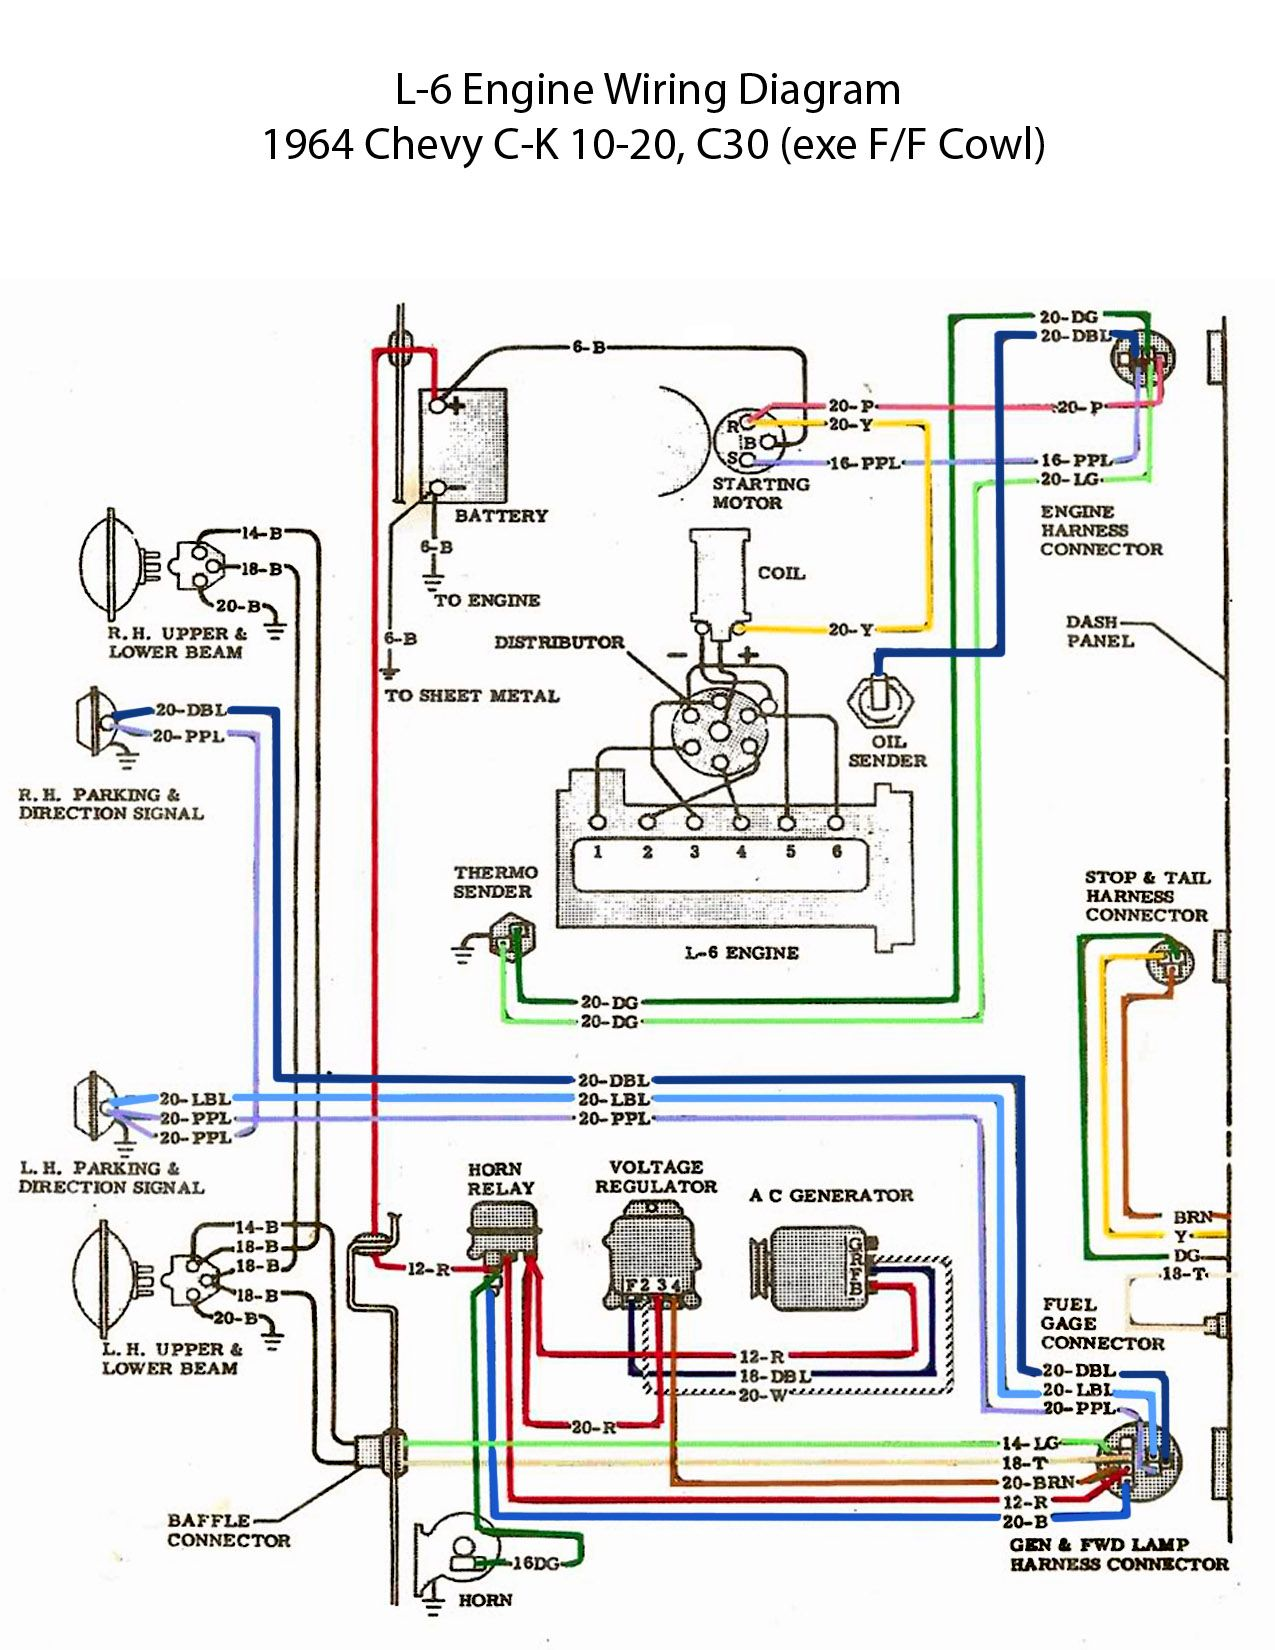 Electric L 6 Engine Wiring Diagram '60s Chevy C10 Wiring Audio Jack RCA  Switch Box Fire Truck Switch Box Wiring Diagrams